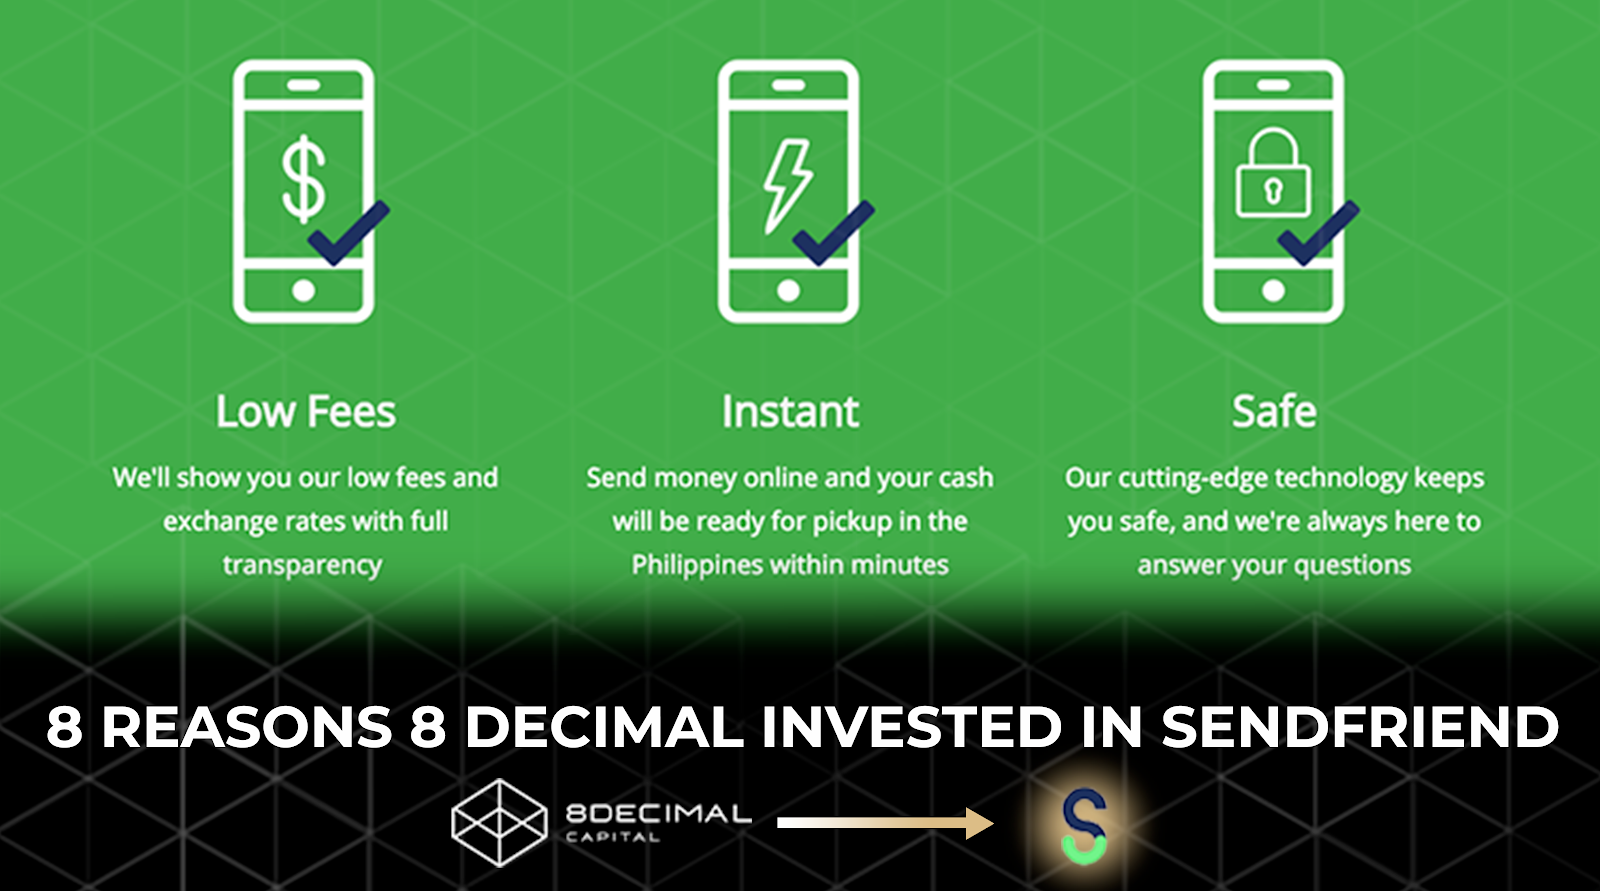 /investment-memo-8-reasons-8-decimal-invested-in-sendfriend-781e47cf2406 feature image